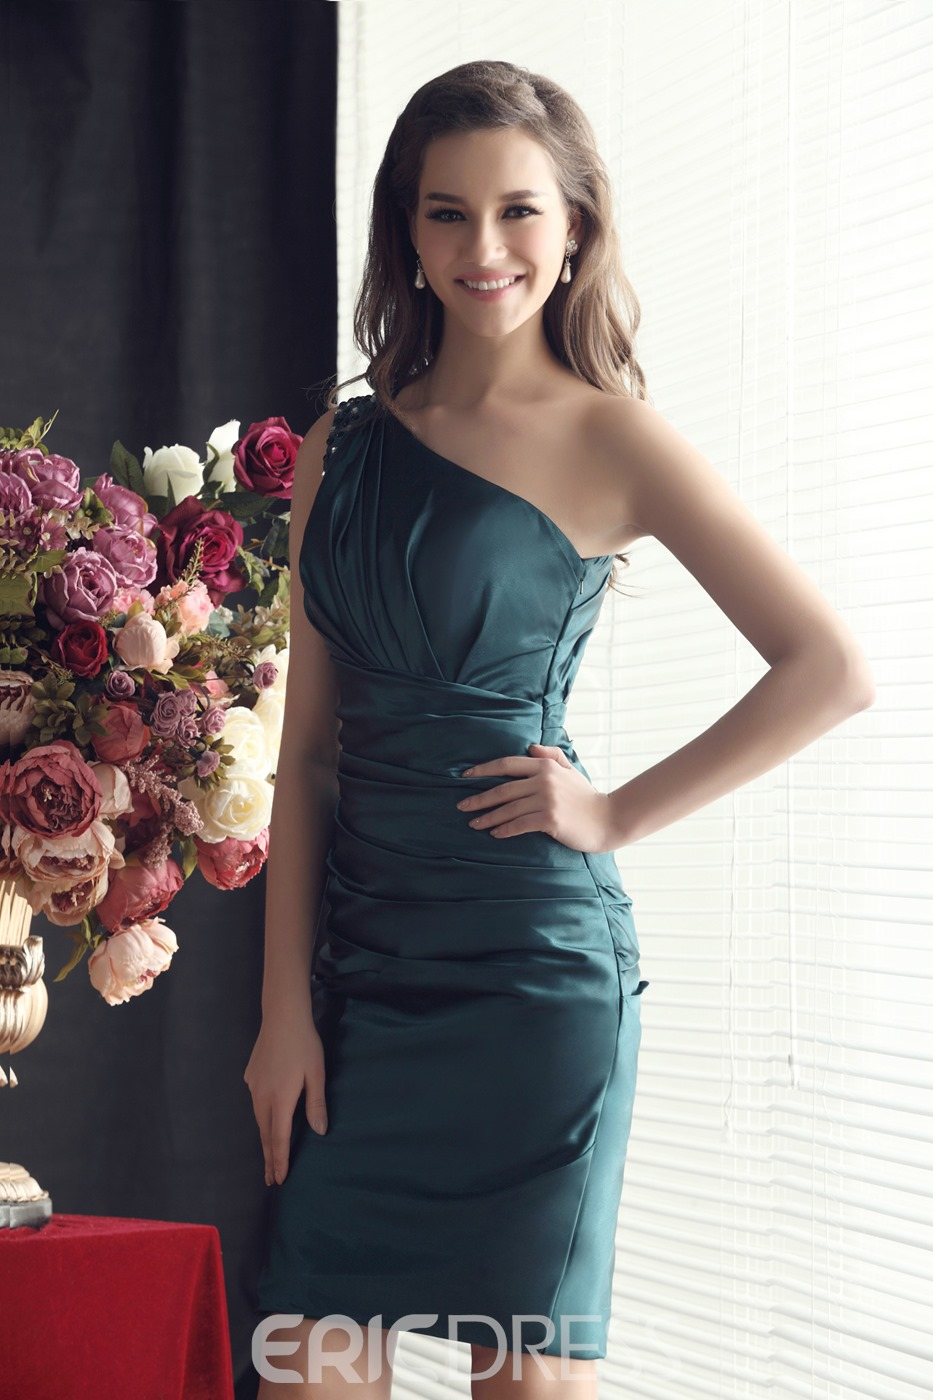 Sheath/Column Beading One-Shoulder Short/Mini-length Sandra's Bridesmaid Dress